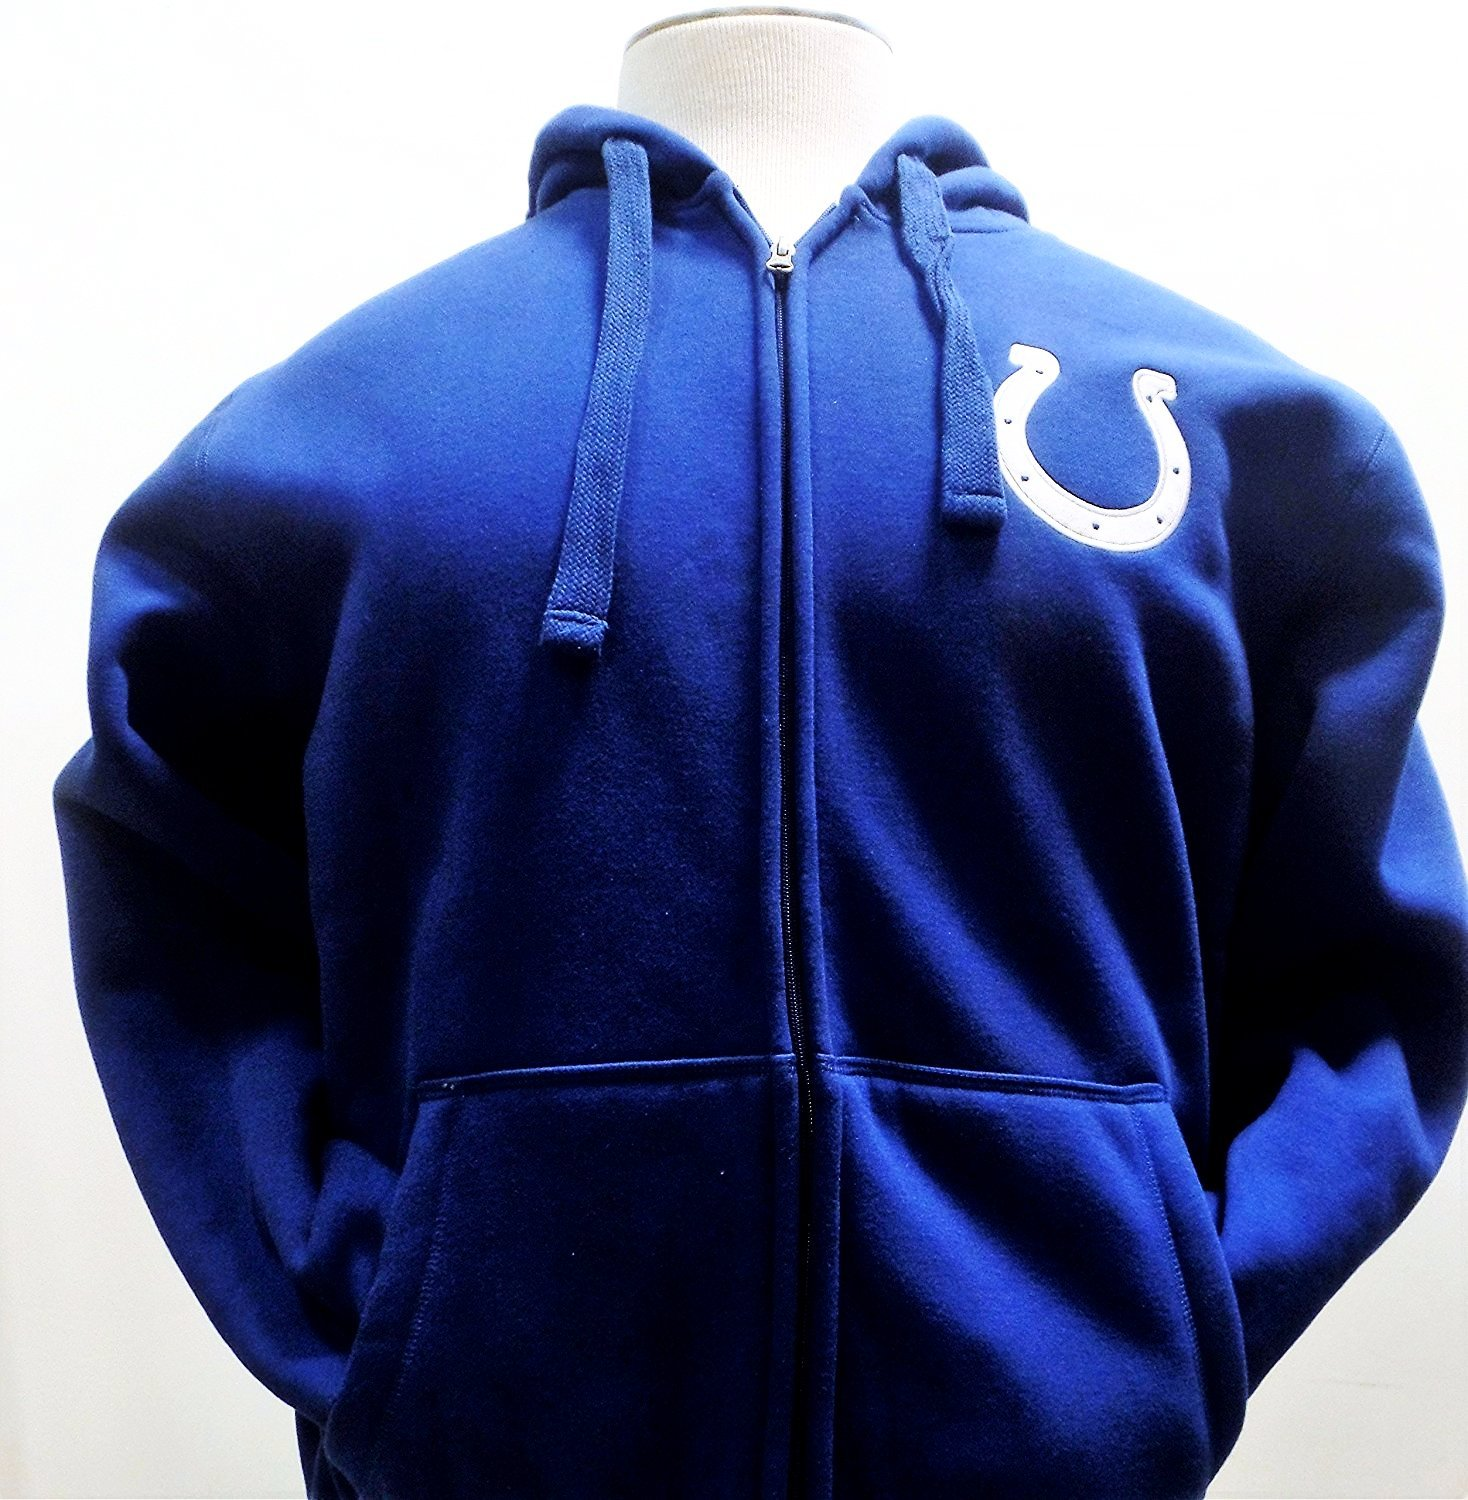 Indianapolis Colts Sherpa Fleece Jacket by G-III Sports